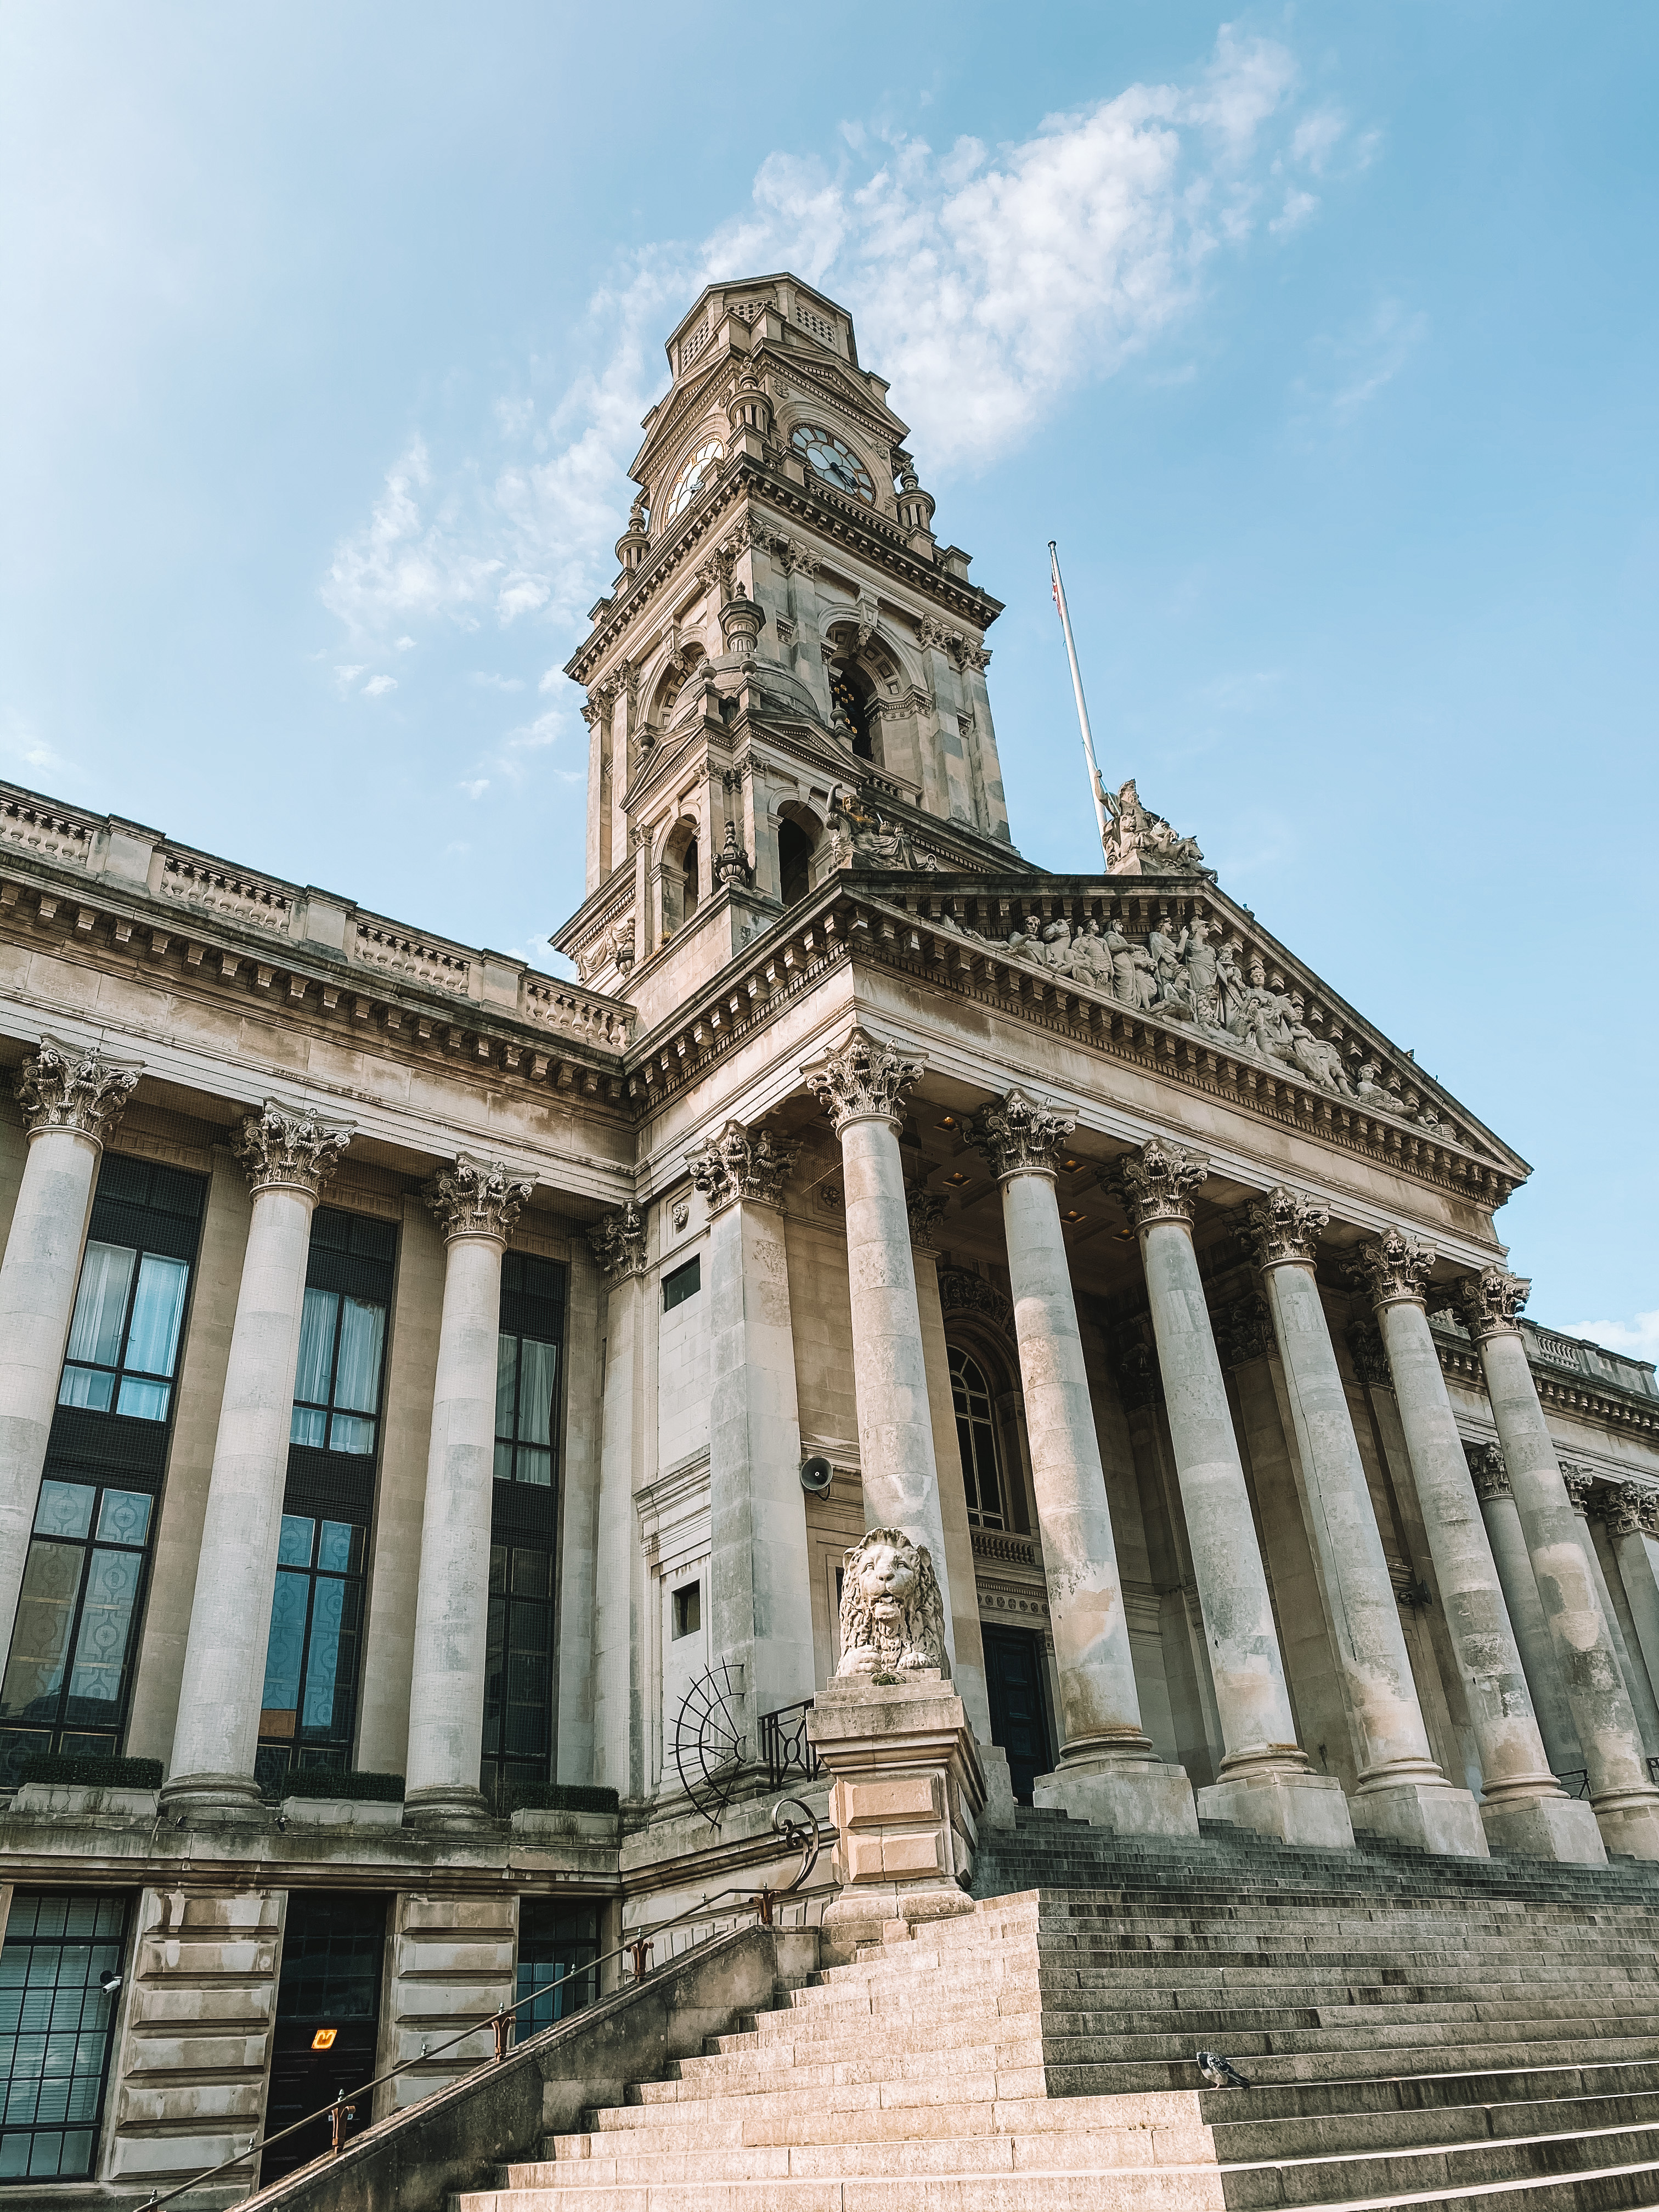 The Portsmouth Guildhall